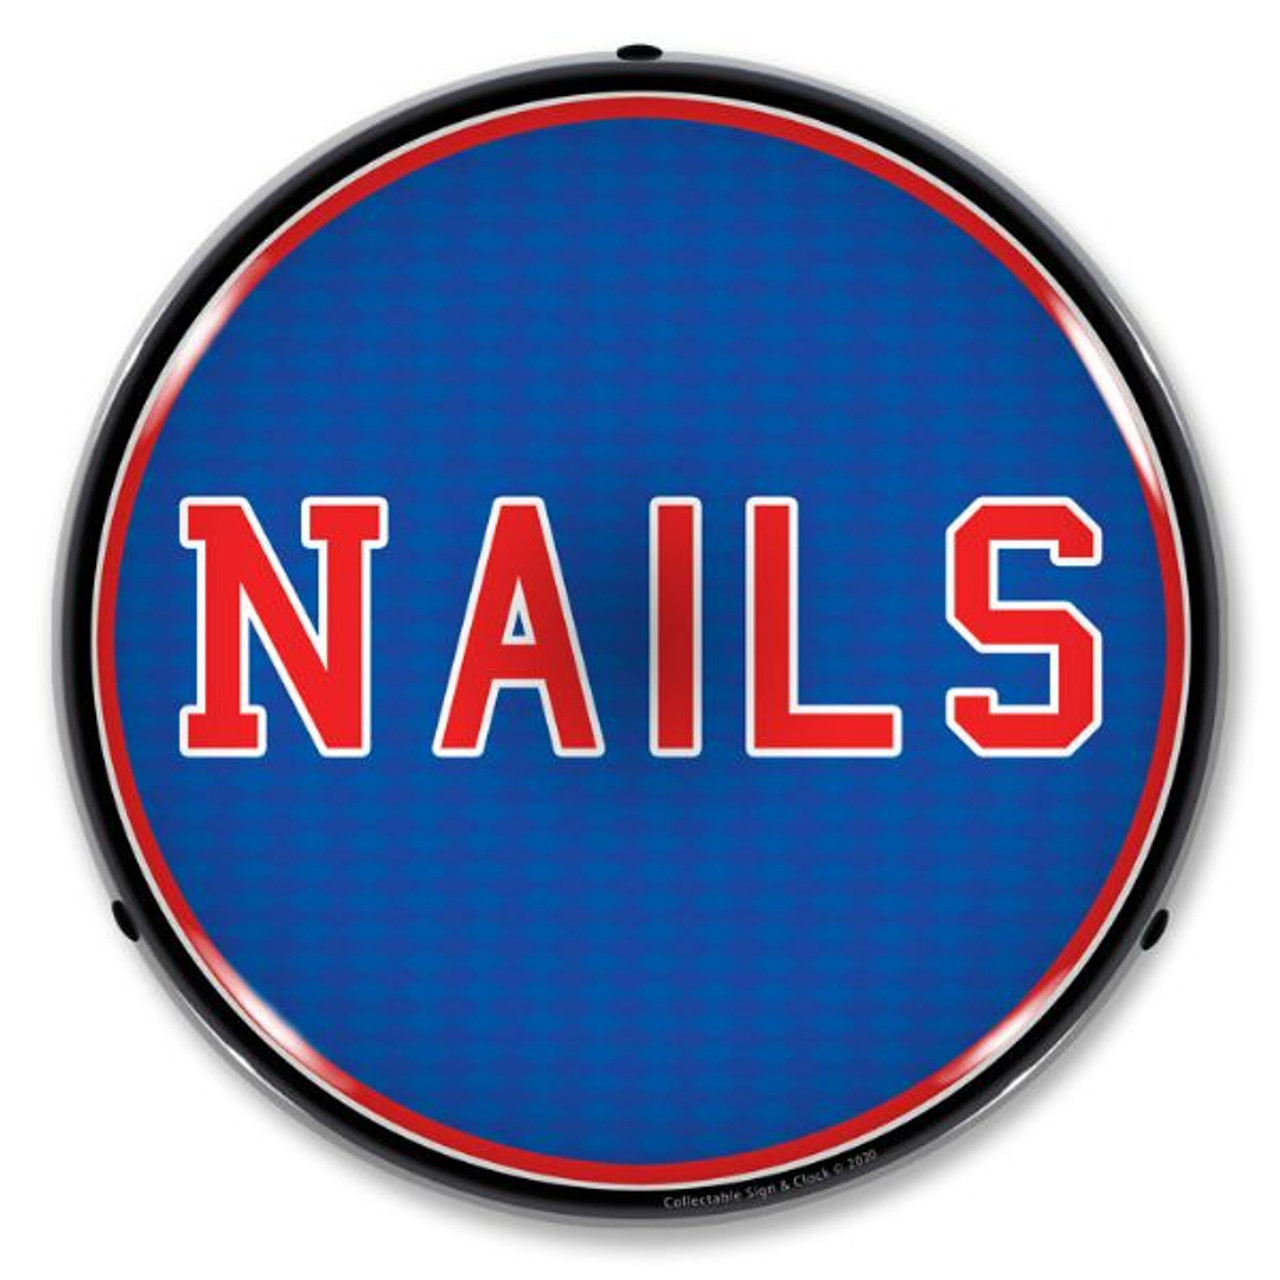 Nails LED Lighted Business Sign 14 x 14 Inches